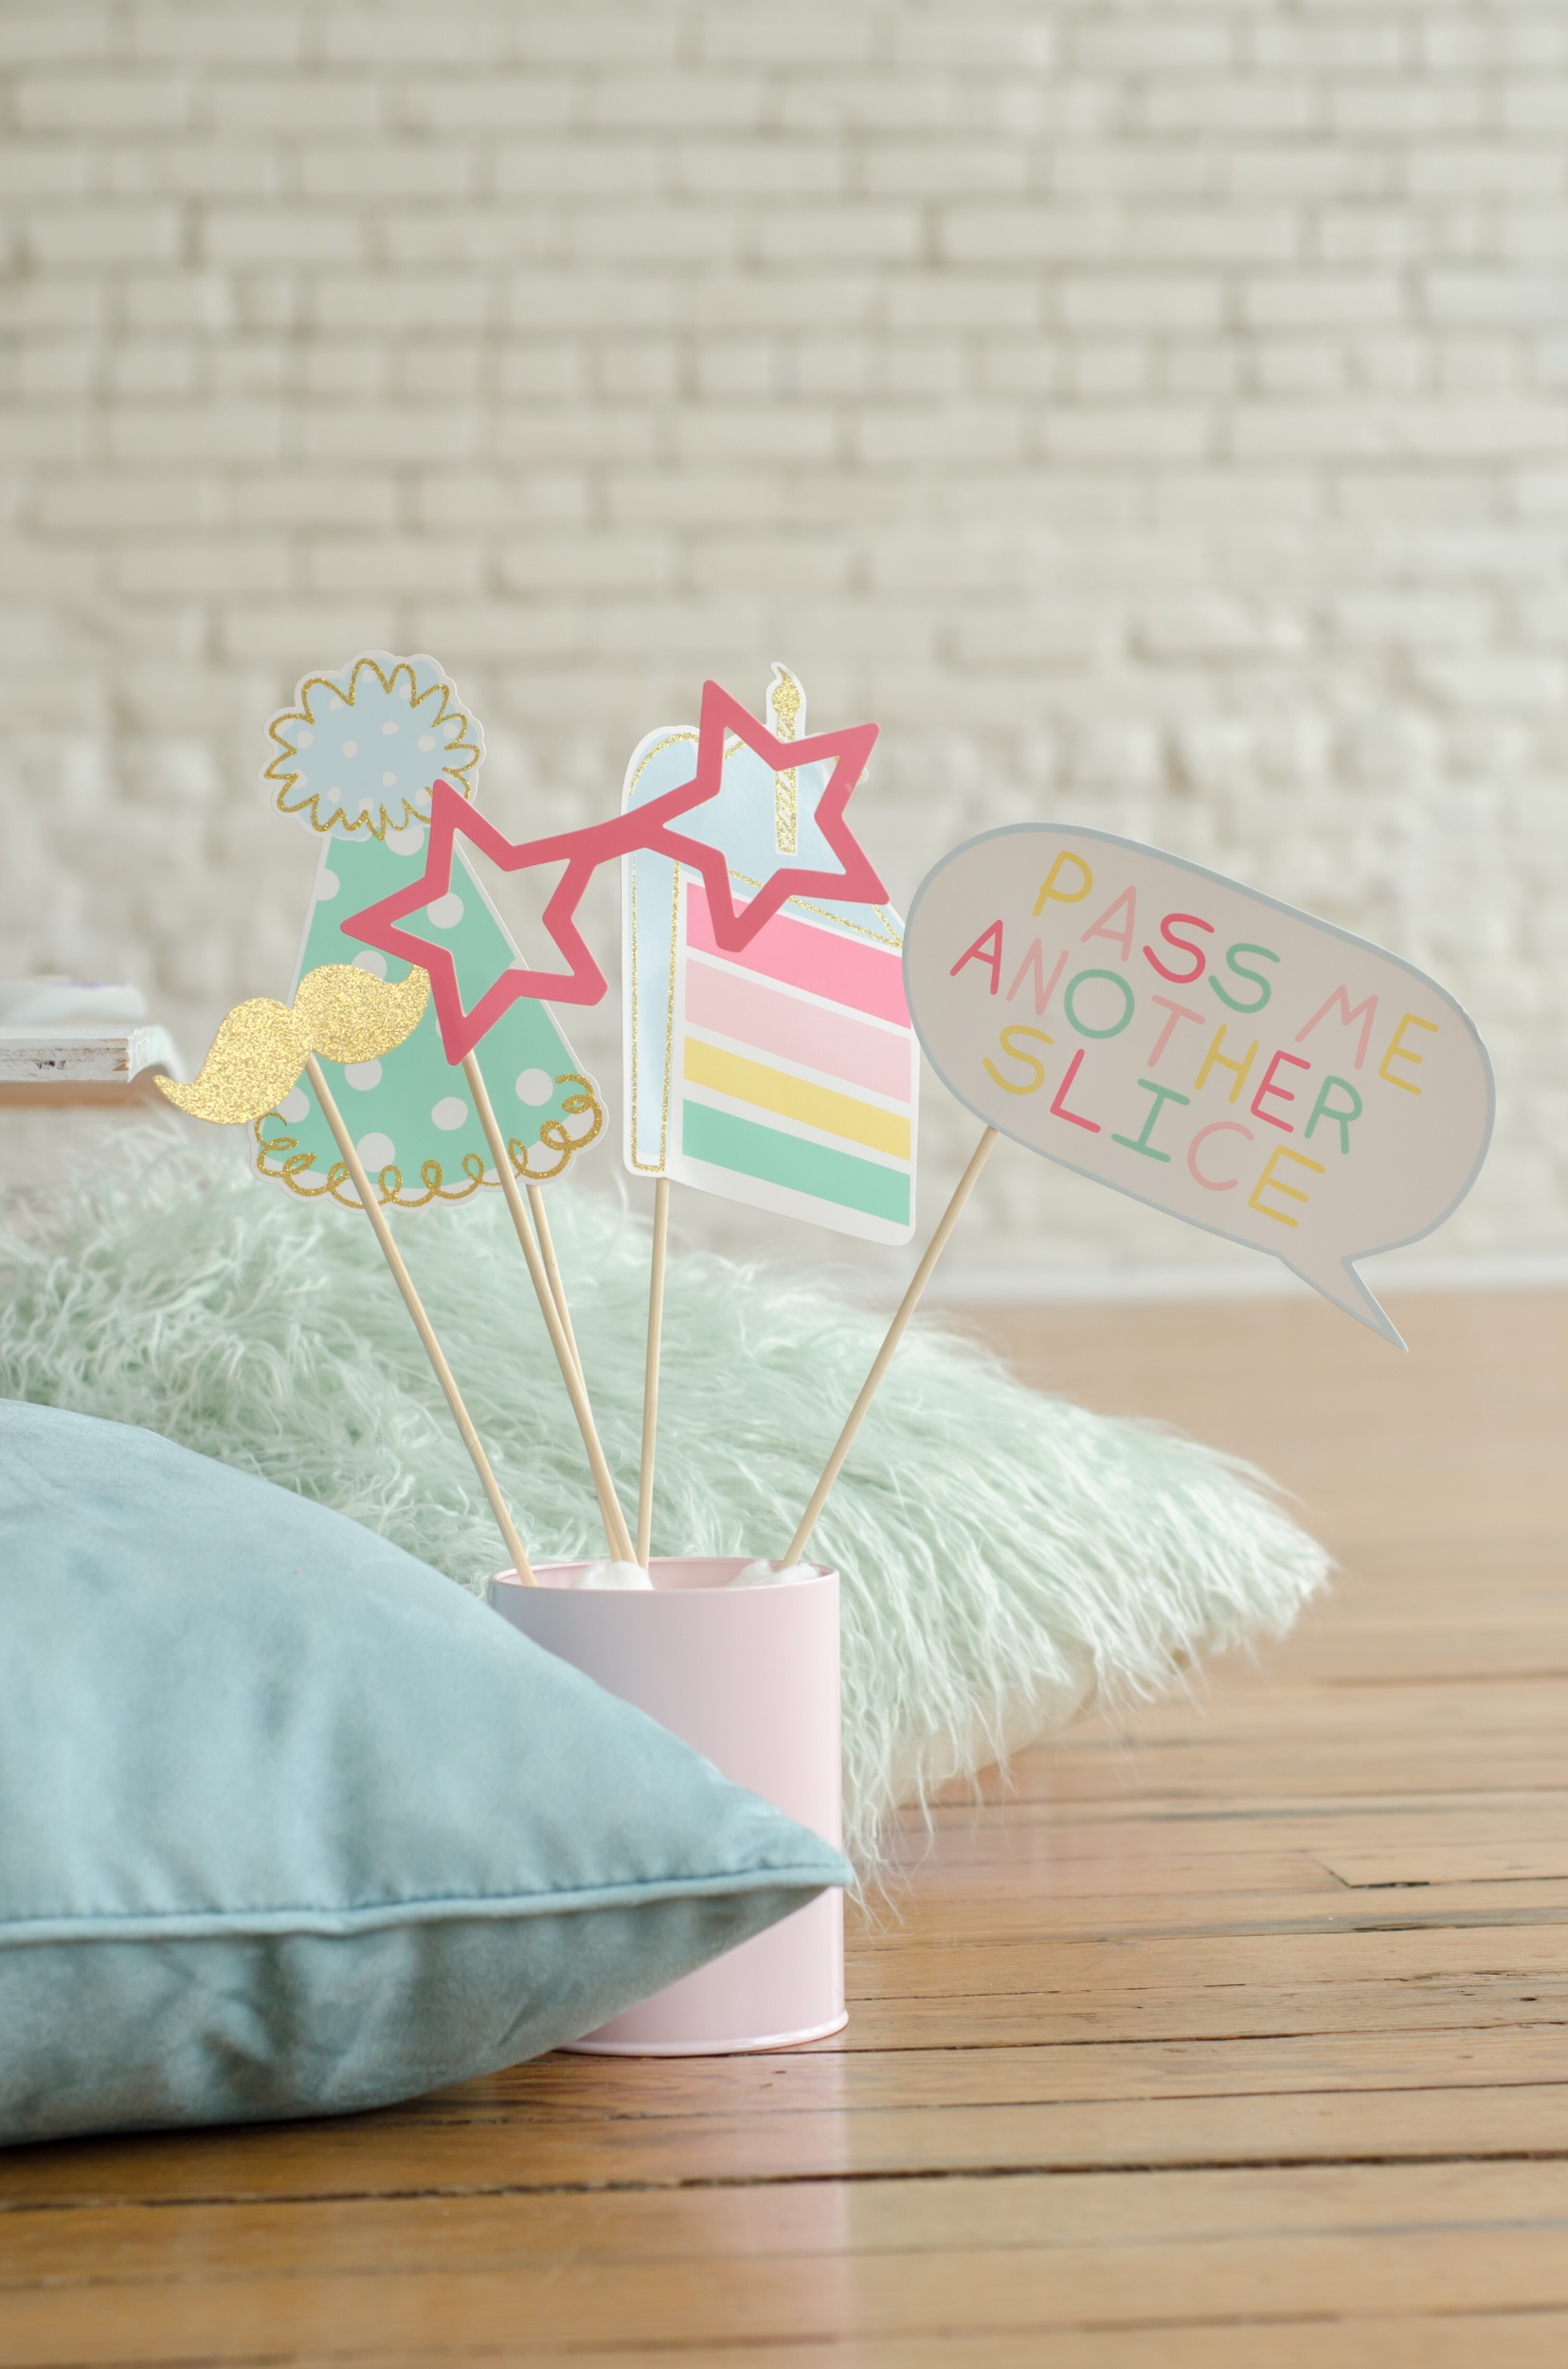 Cute photo booth props for a fun birthday party